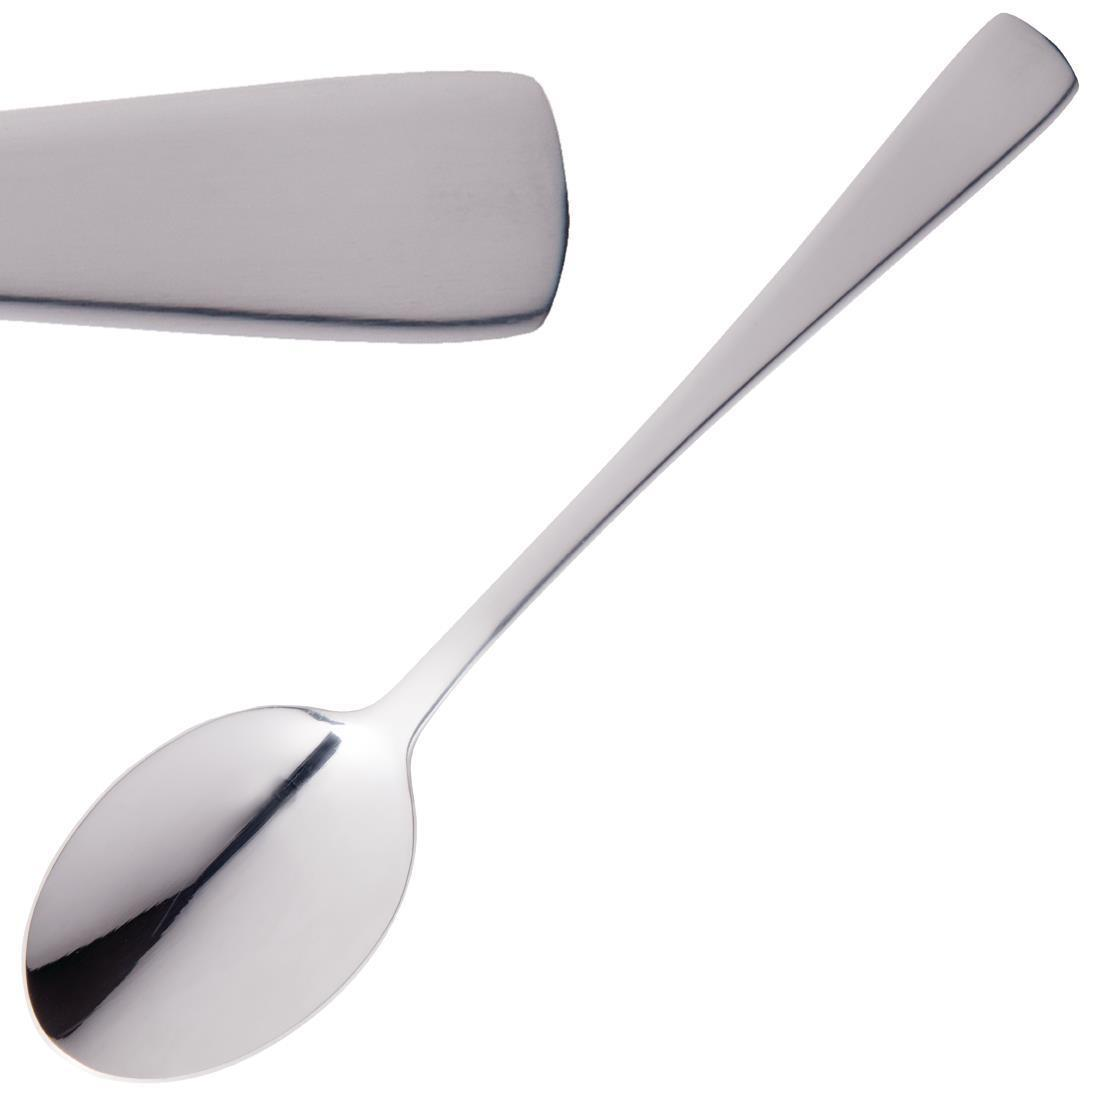 Olympia Clifton Dessert Spoon